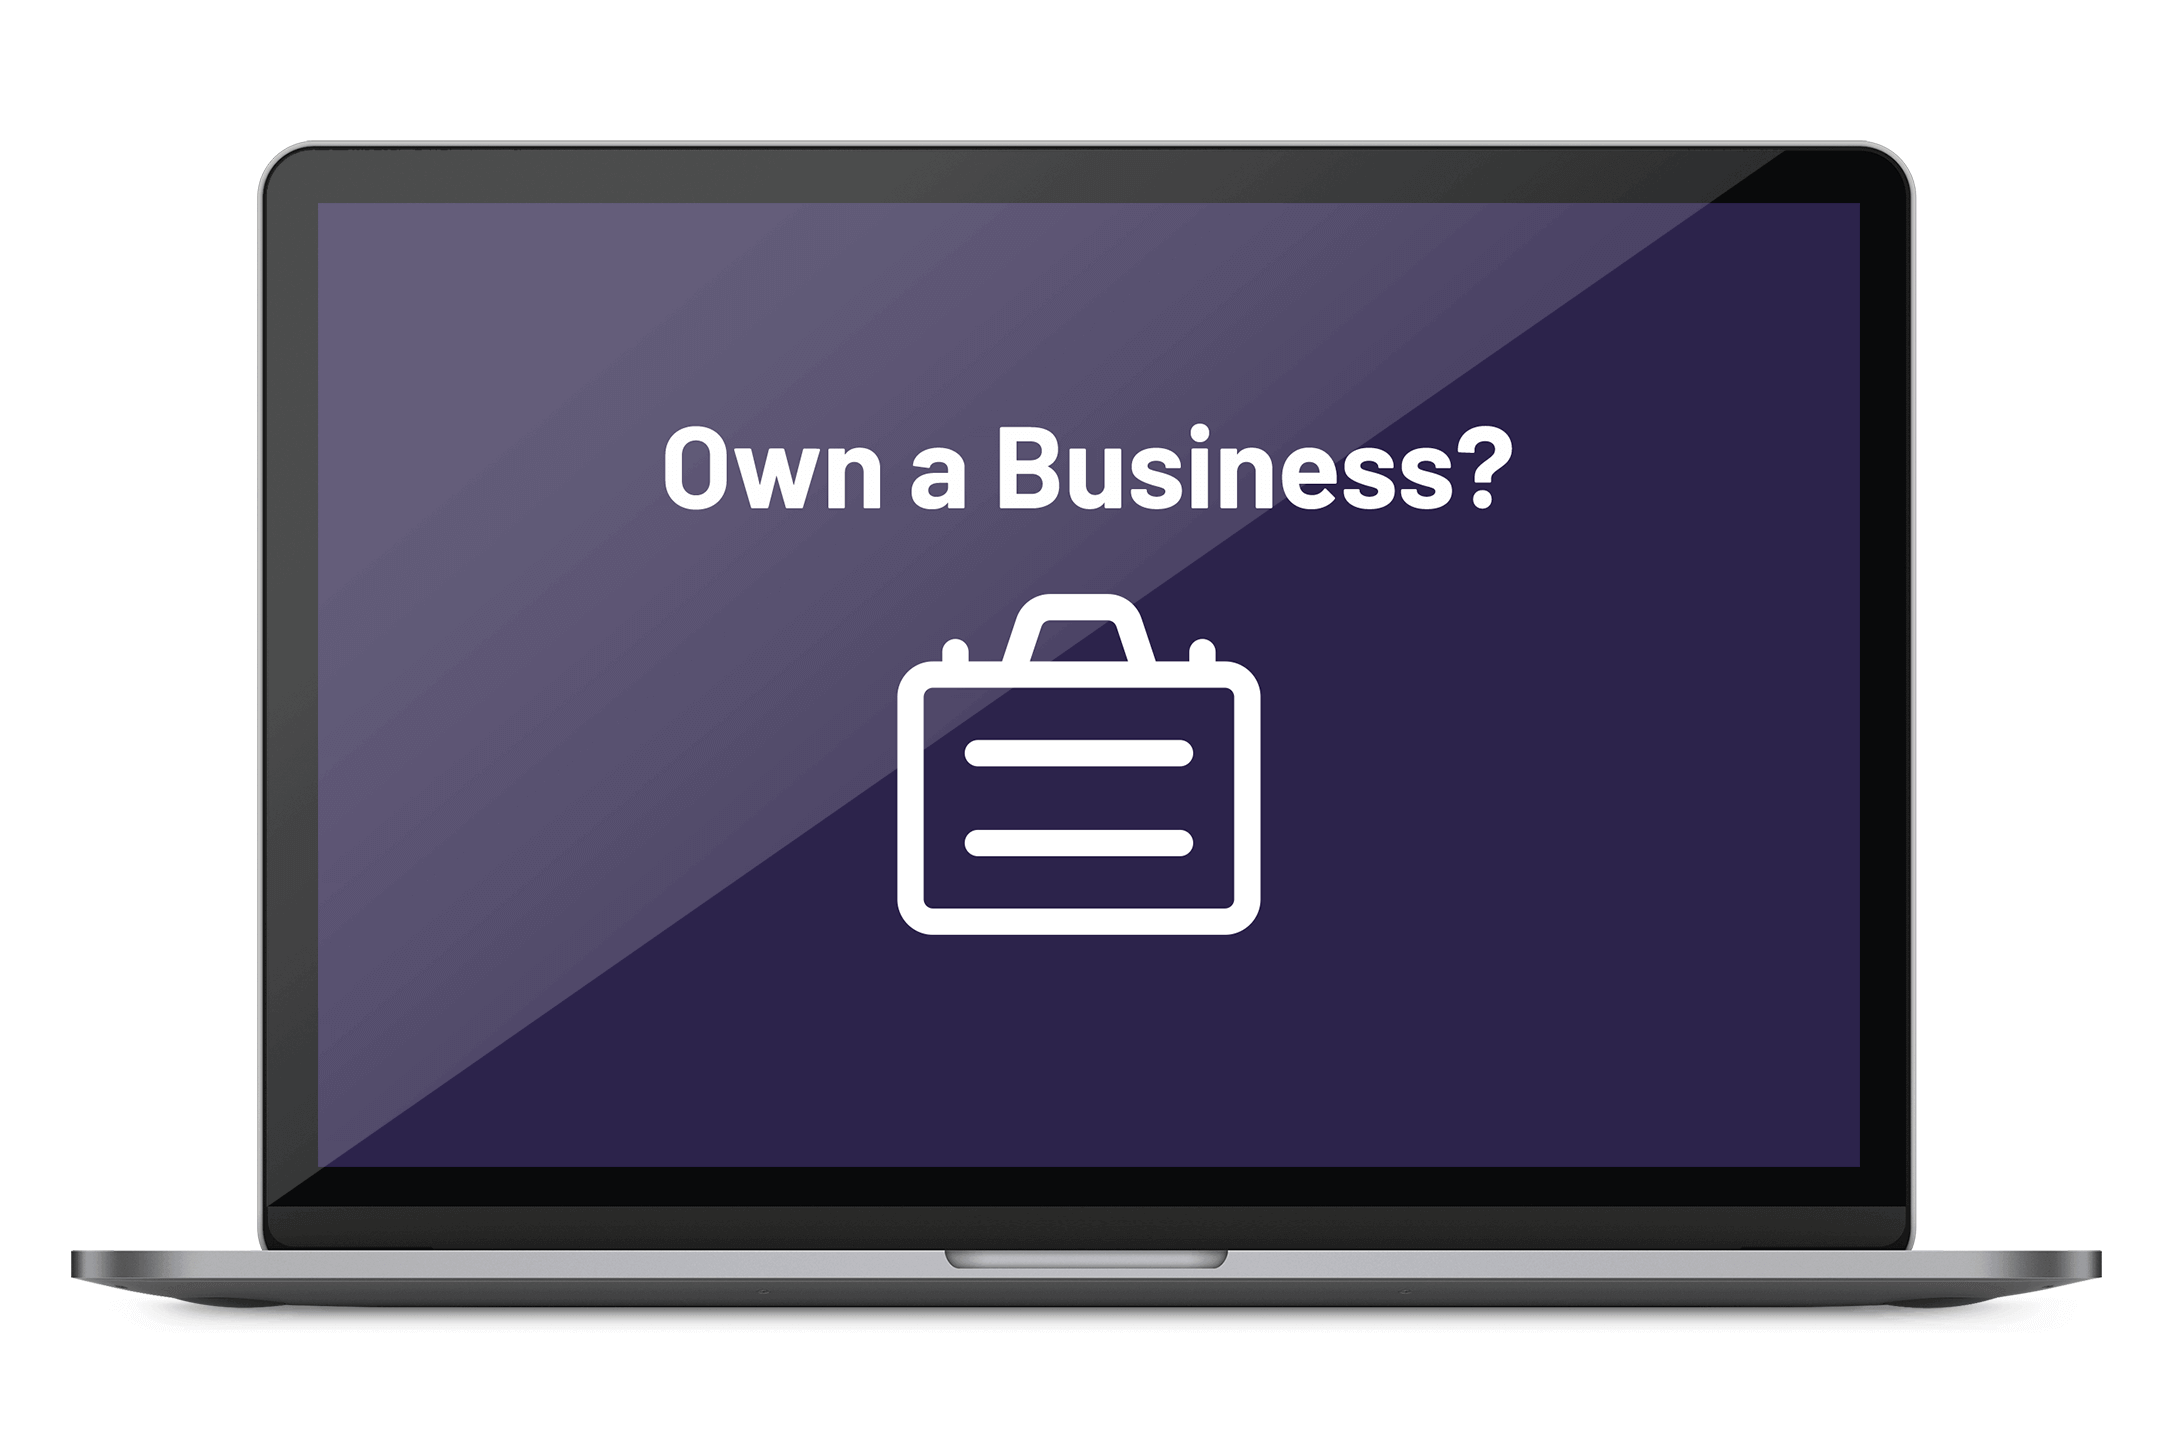 A laptop screen displaying a briefcase icon below the text 'Own a Business'